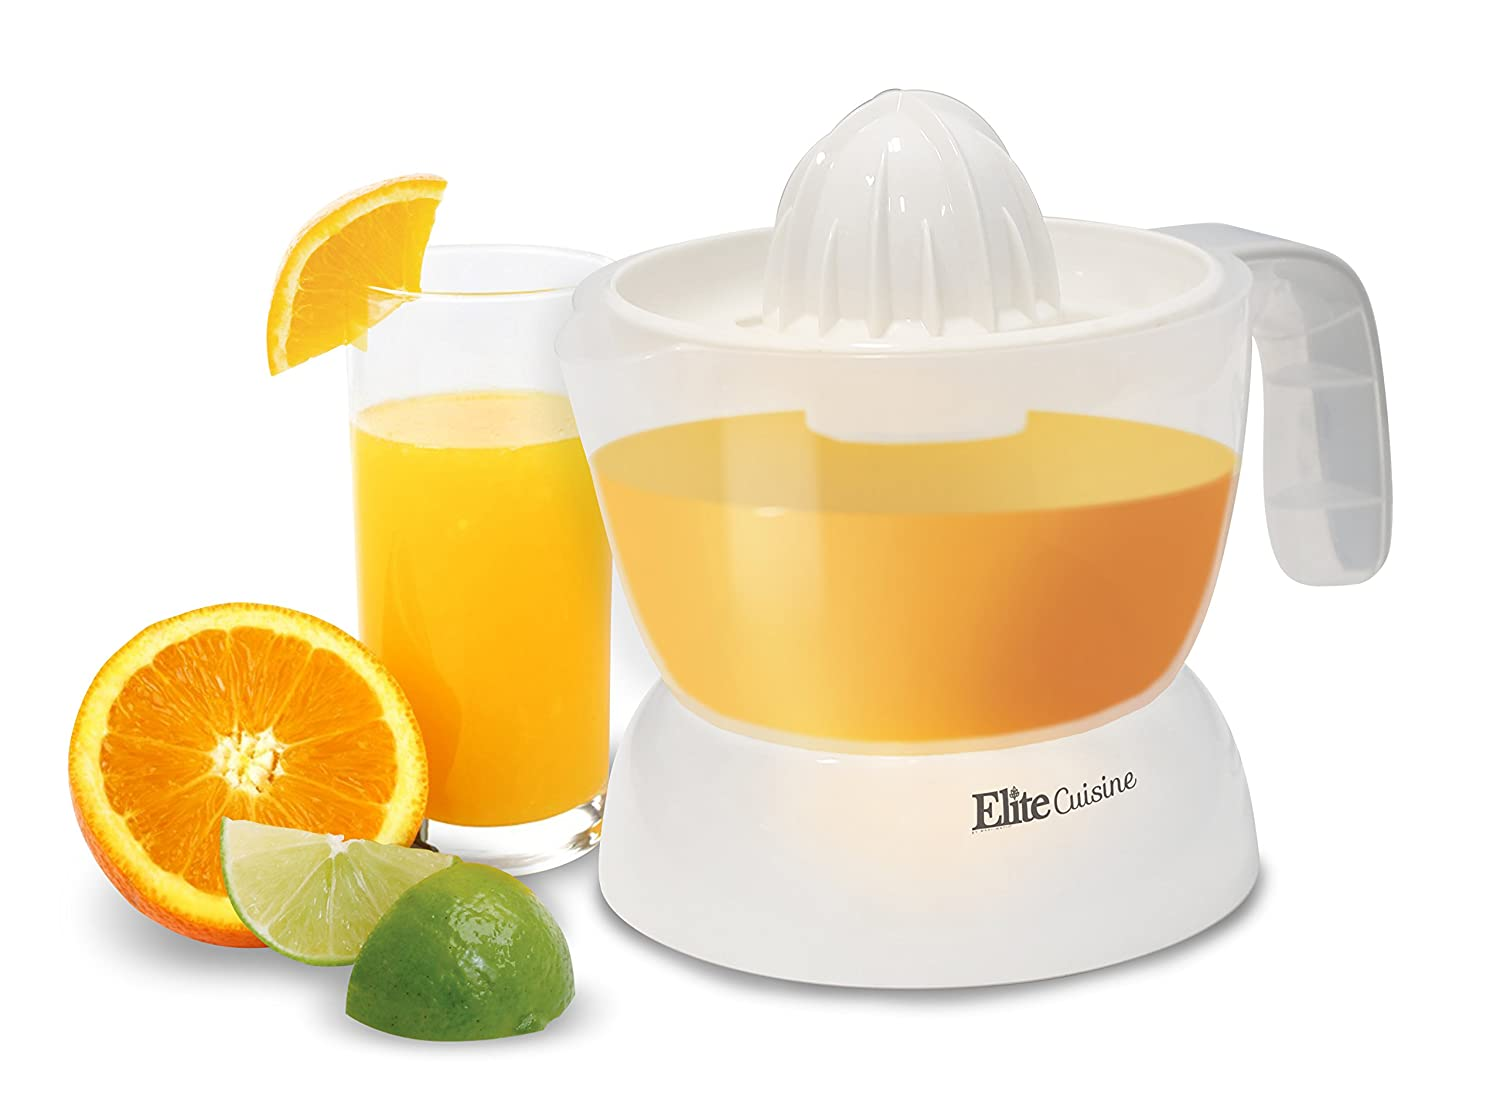 Elite Cuisine ETS-401 Citrus Juicer Manual Hand Squeeze Easy Pouring Spout, 16 oz, White